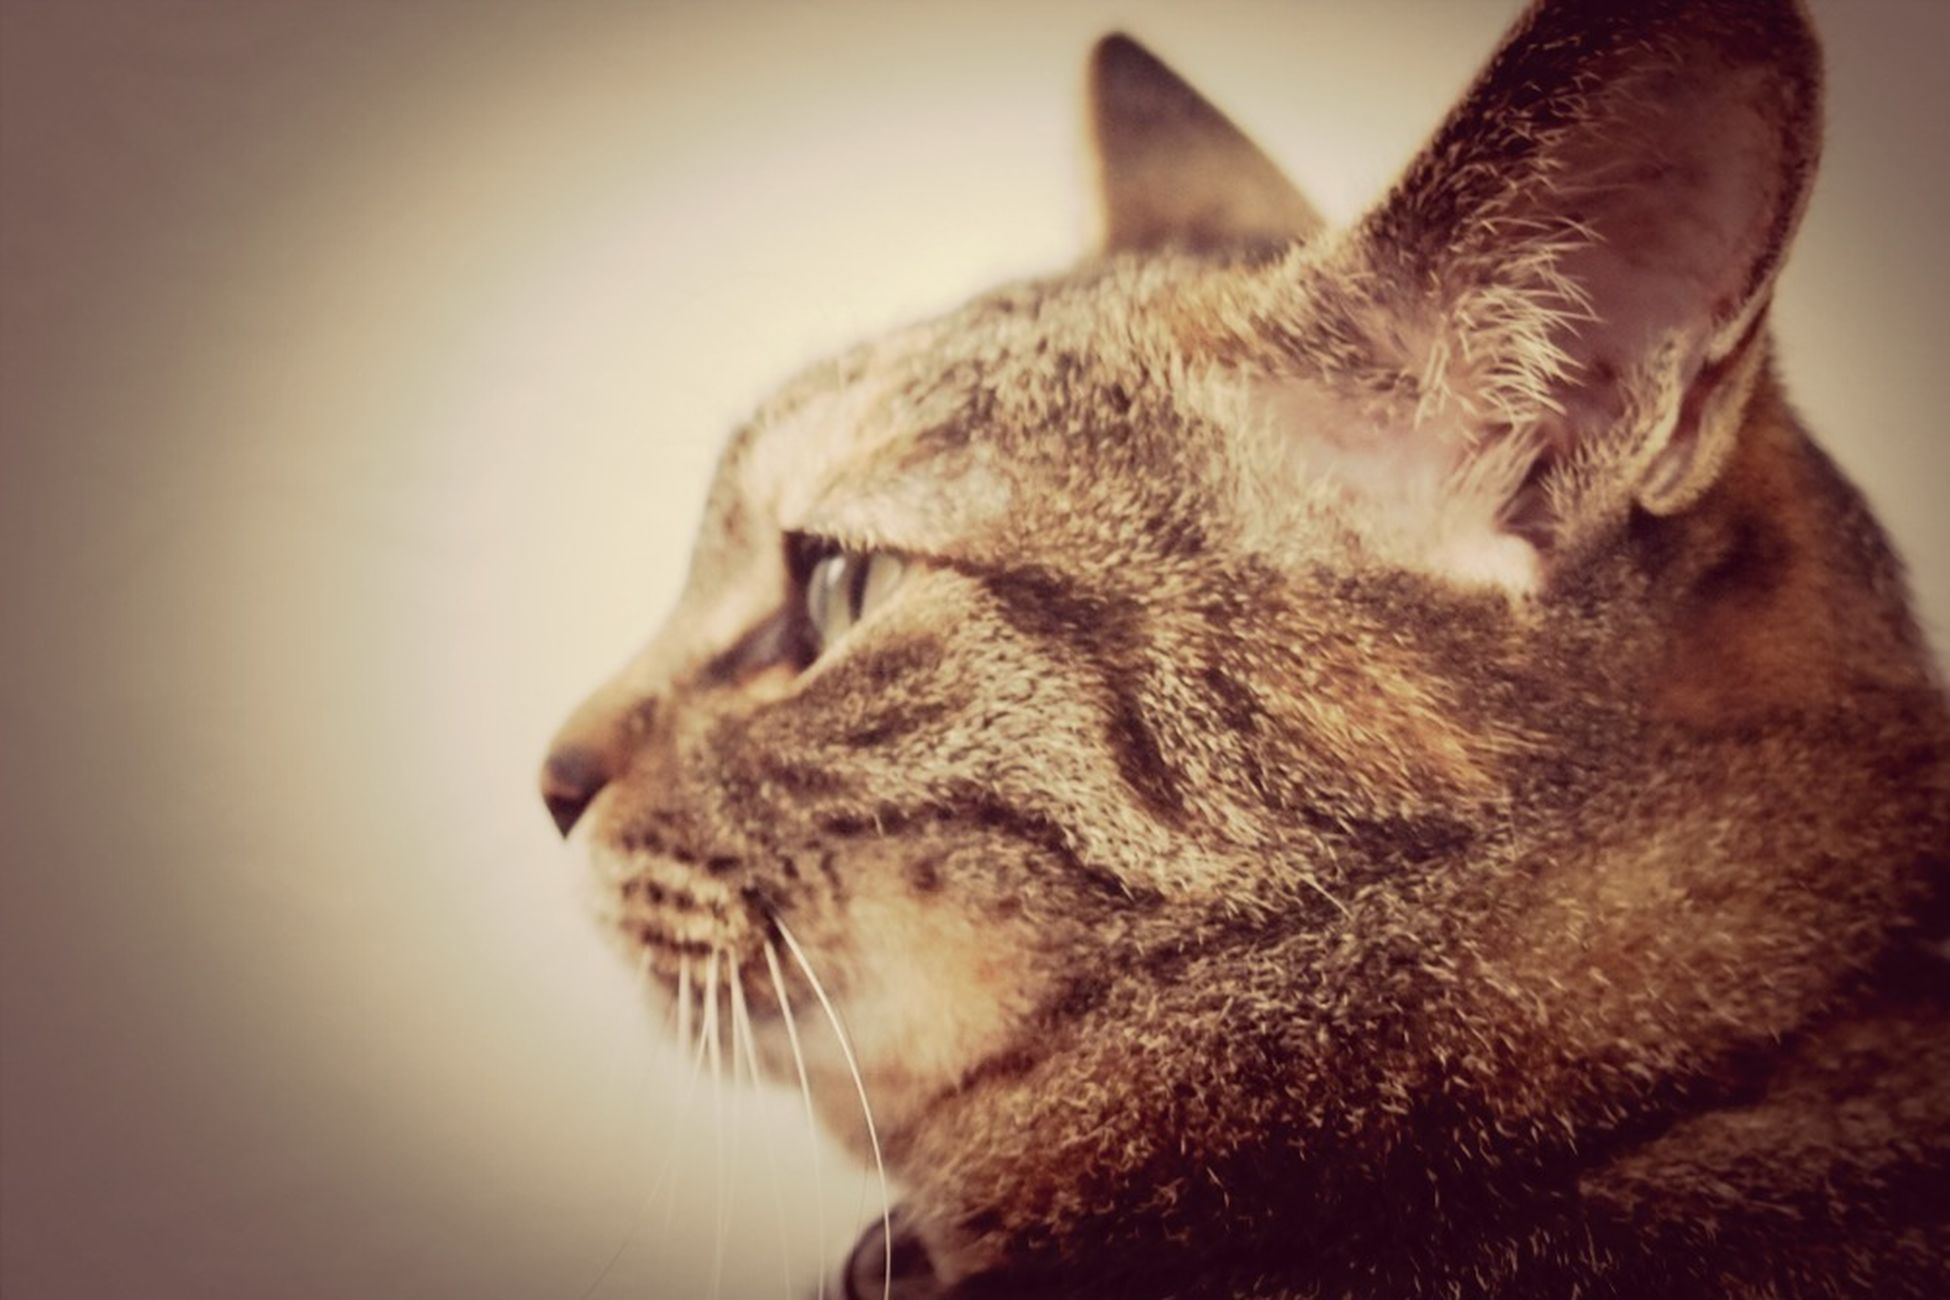 pets, one animal, domestic animals, animal themes, mammal, domestic cat, indoors, cat, feline, relaxation, whisker, close-up, animal head, eyes closed, sleeping, resting, lying down, looking away, animal body part, no people